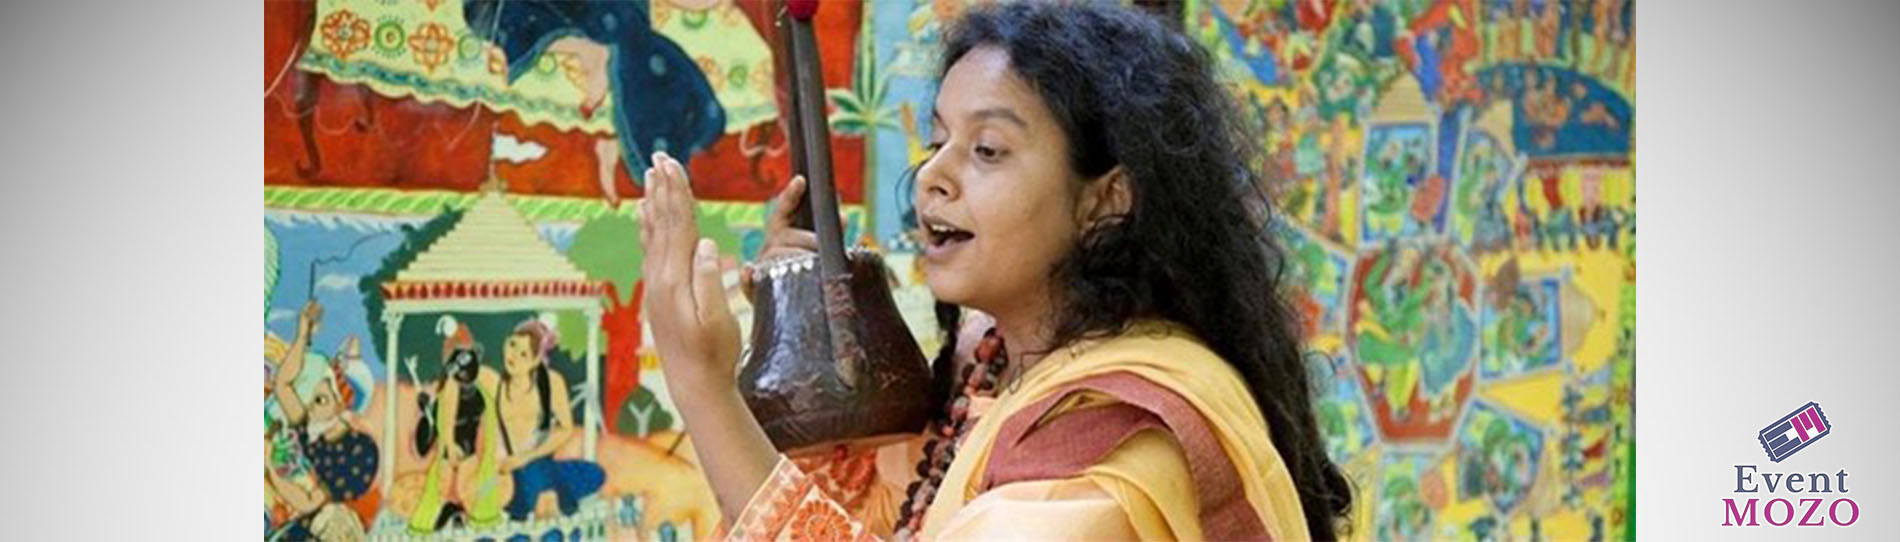 EventMozo A Rare Evening of Spiritual Song from India with Parvathy Baul